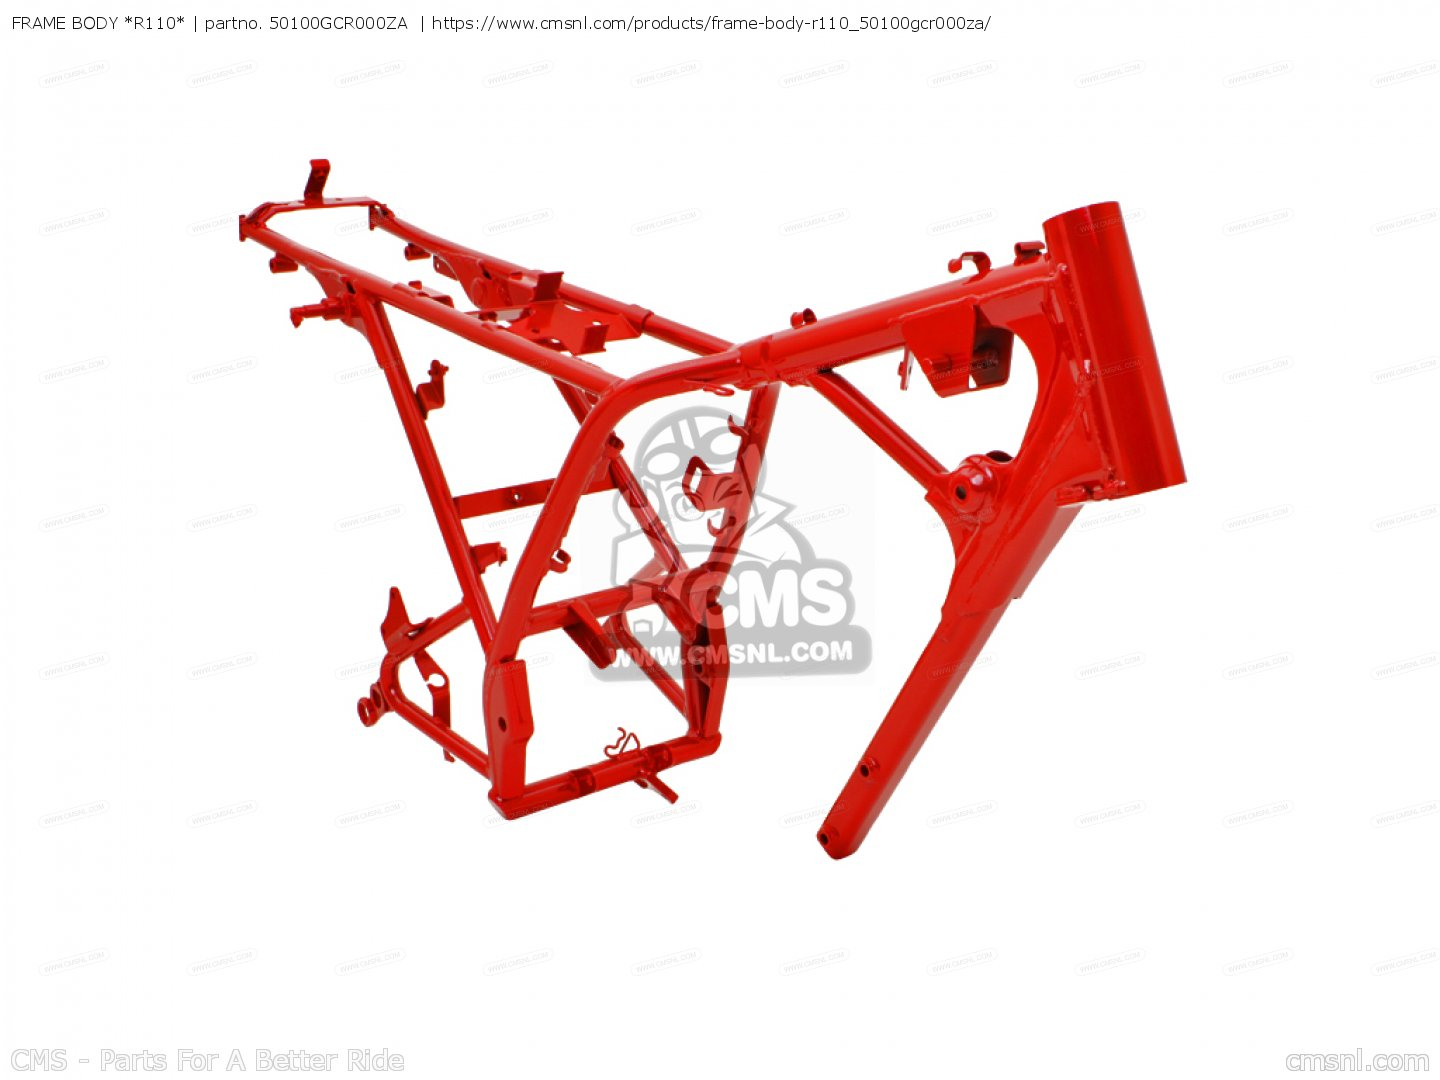 FRAME BODY *R110*, fits CB50V DREAM JAPAN (11GCRVJ3) - order at CMSNL